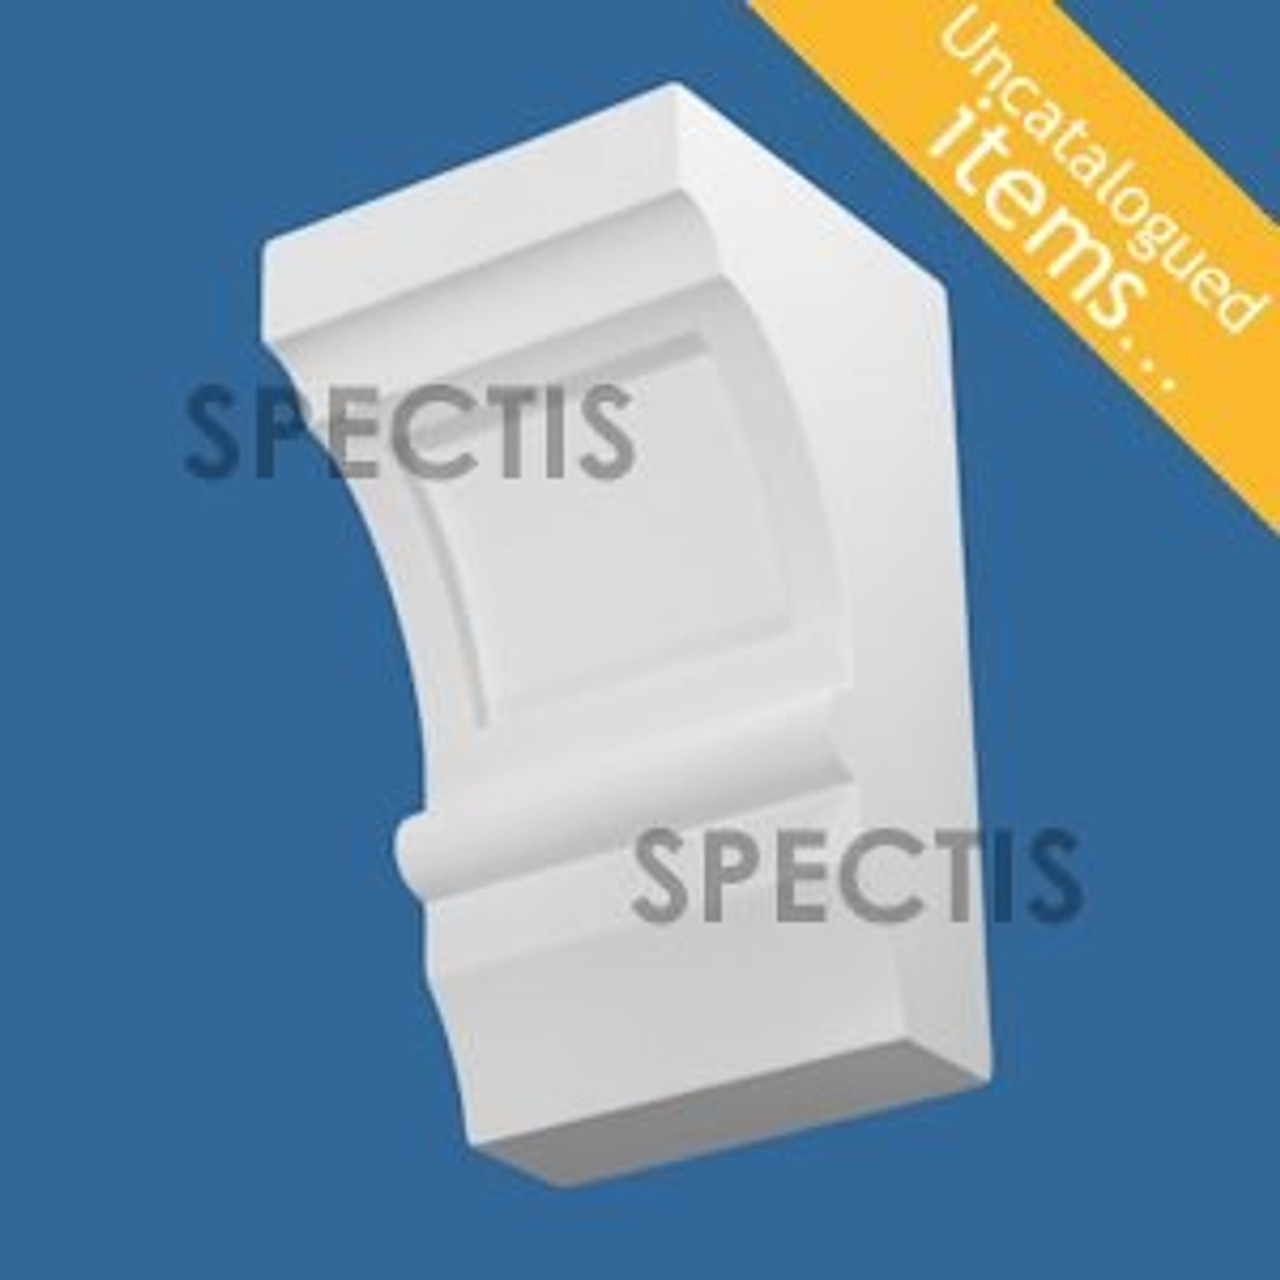 """BL3016 Spectis Eave Block or Bracket 8""""W x 14""""H x 8"""" Projection"""